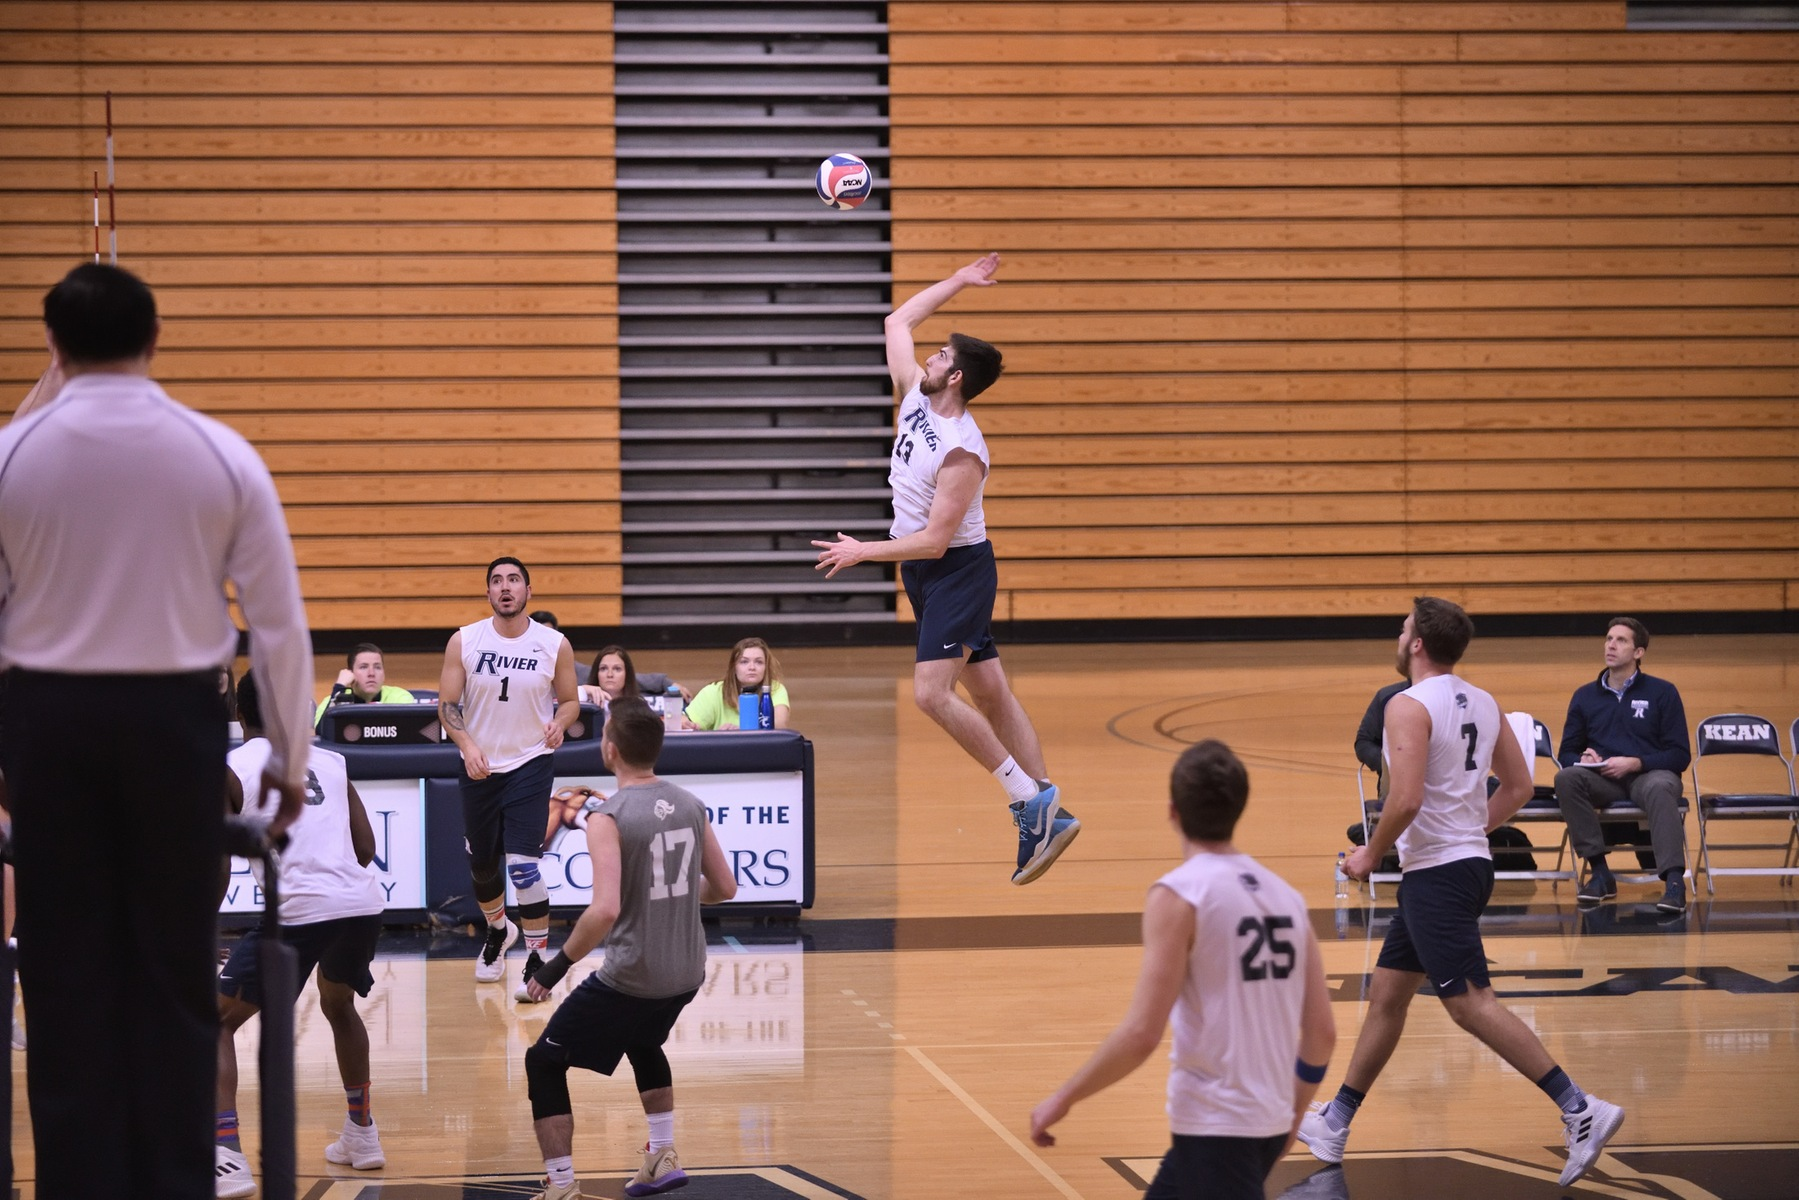 Men's Volleyball: Raiders outplayed by Mustangs in a 3-1 loss.